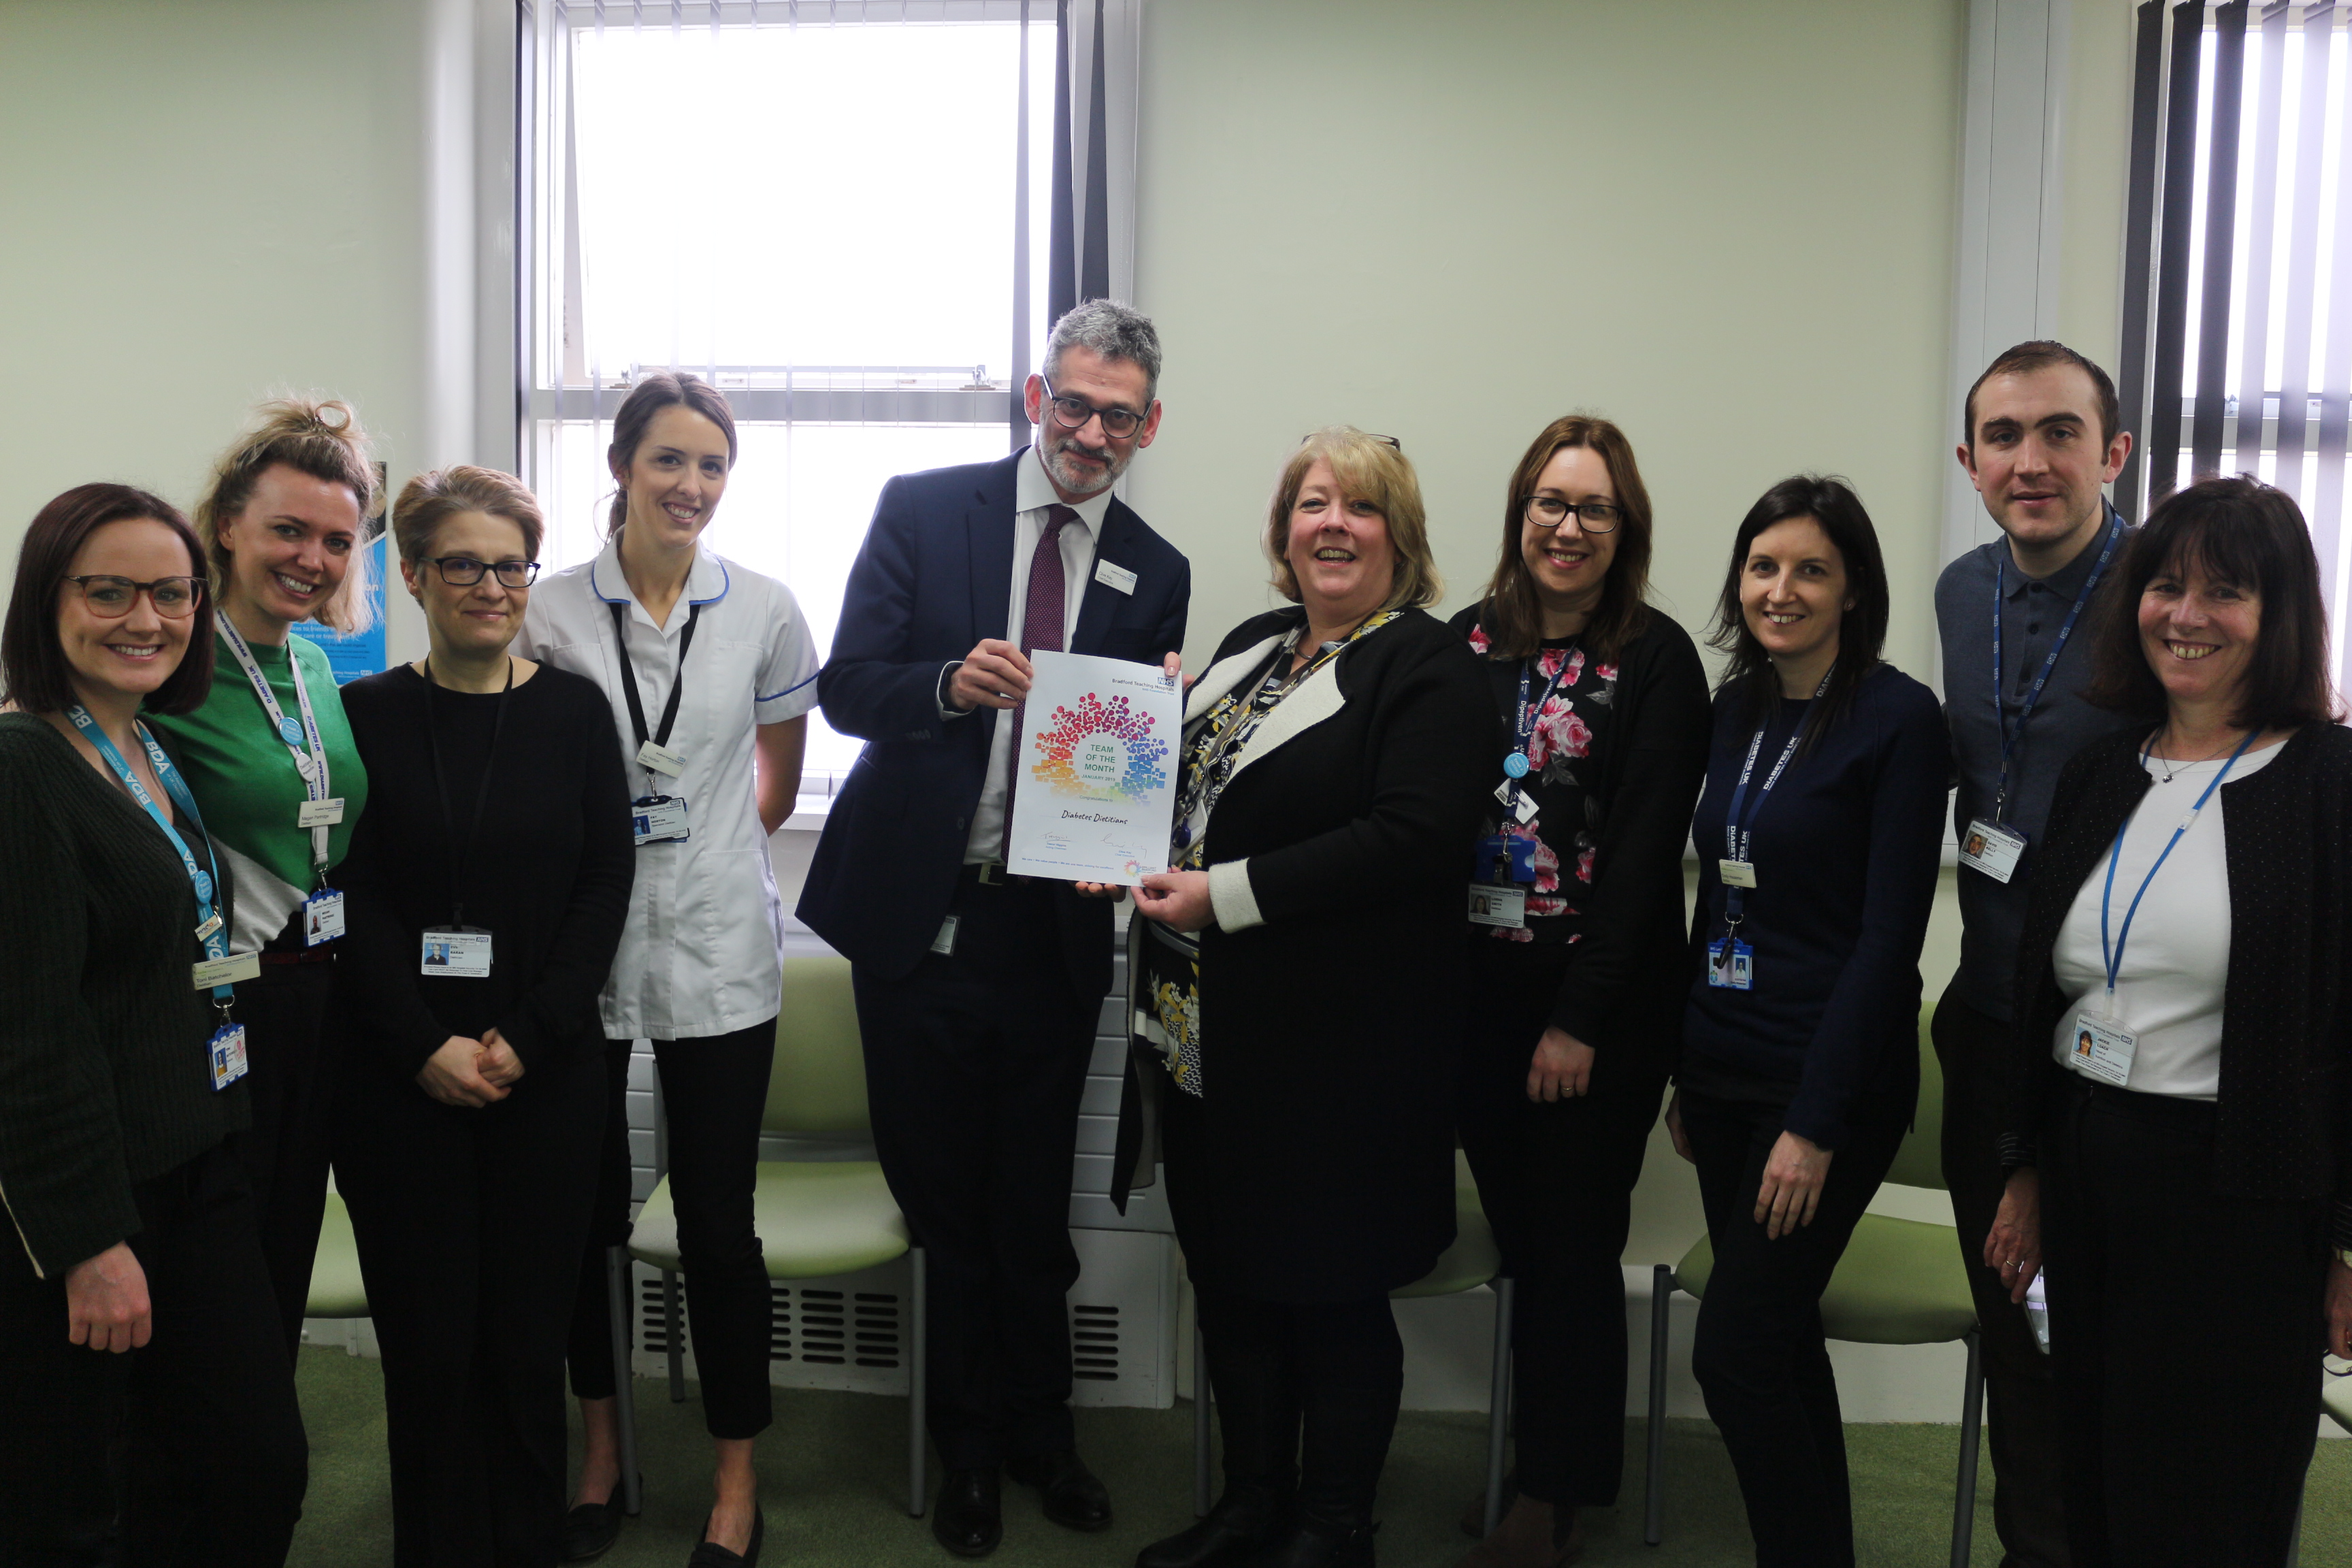 The Diabetes Dietitian Team - Team of the Month for January 2019